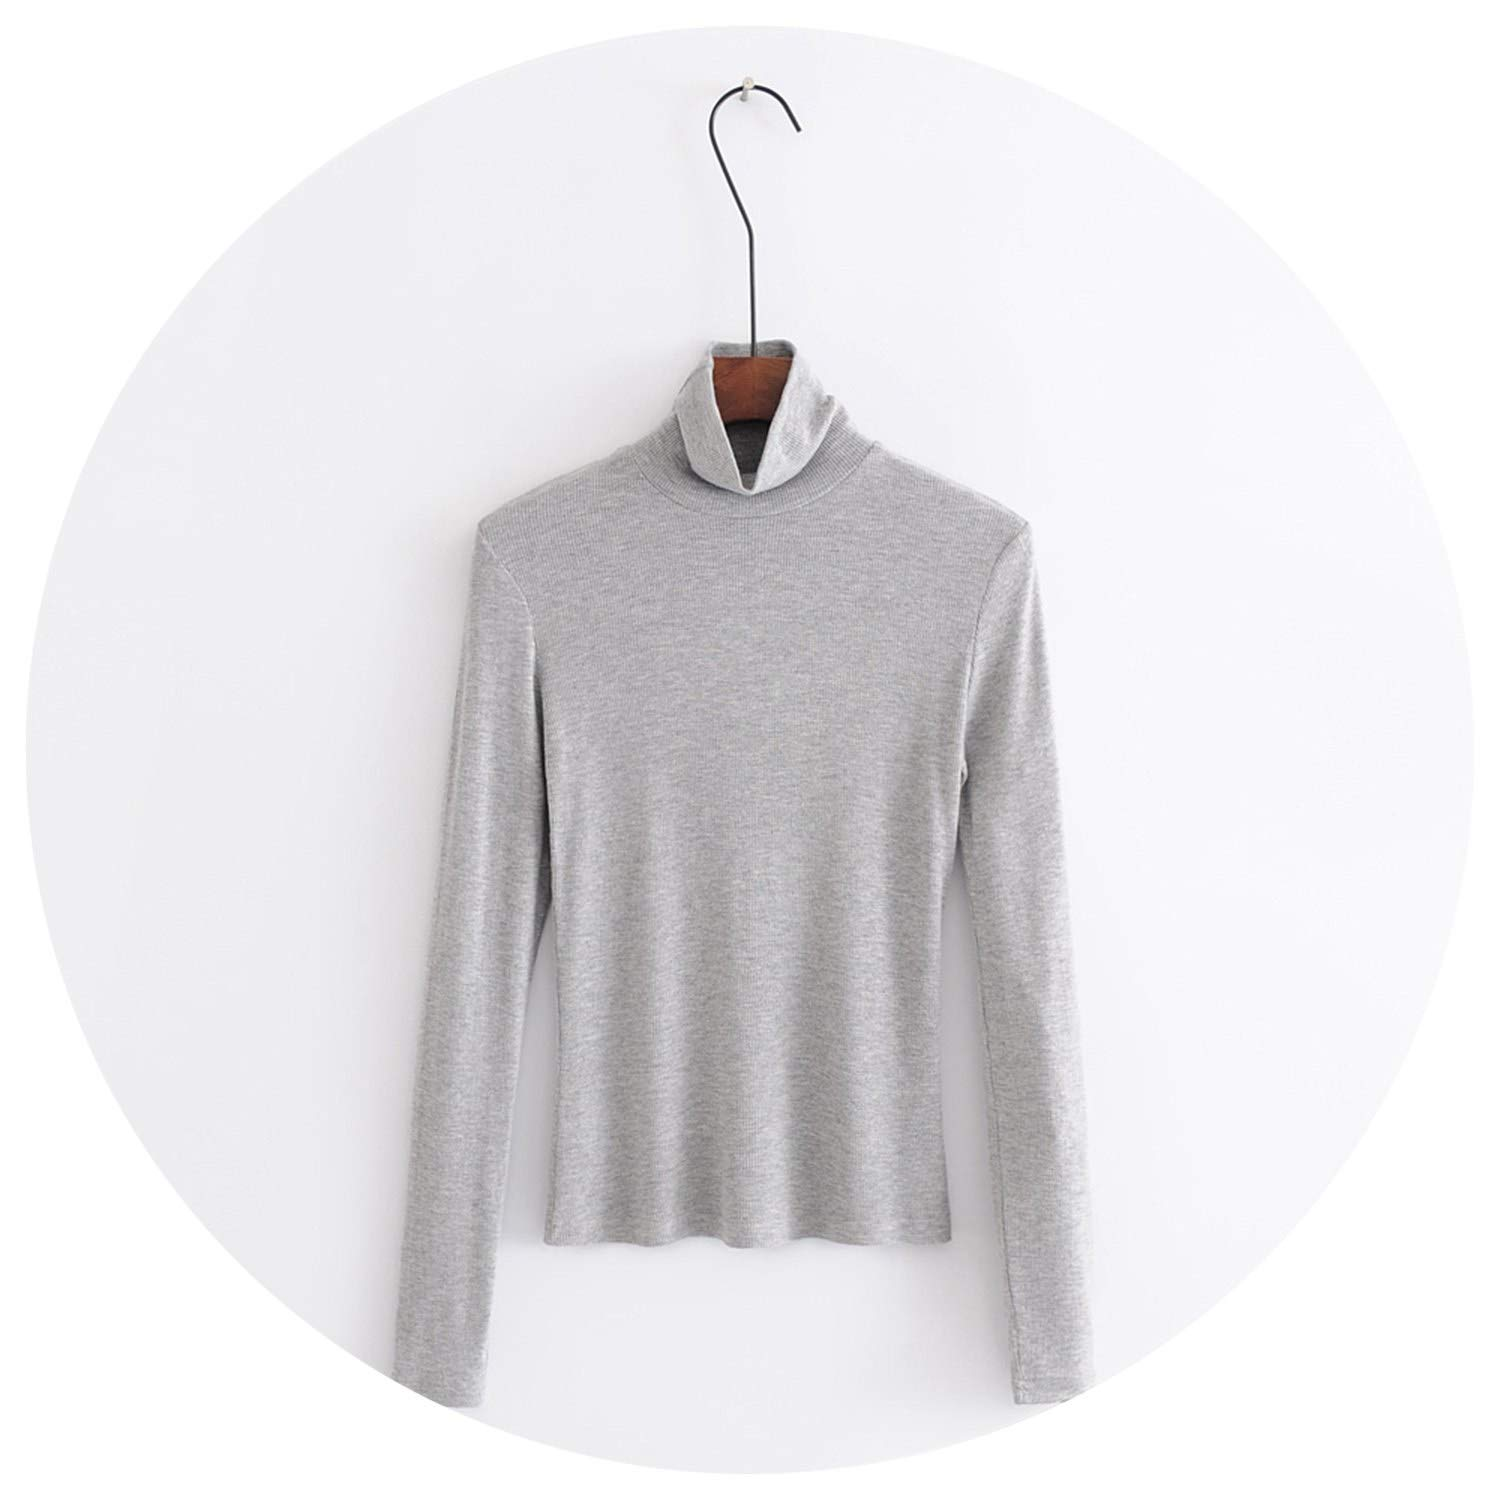 9beced883 Women Turtleneck Ribbed Slim Fit T-Shirt with Long Sleeve All ...